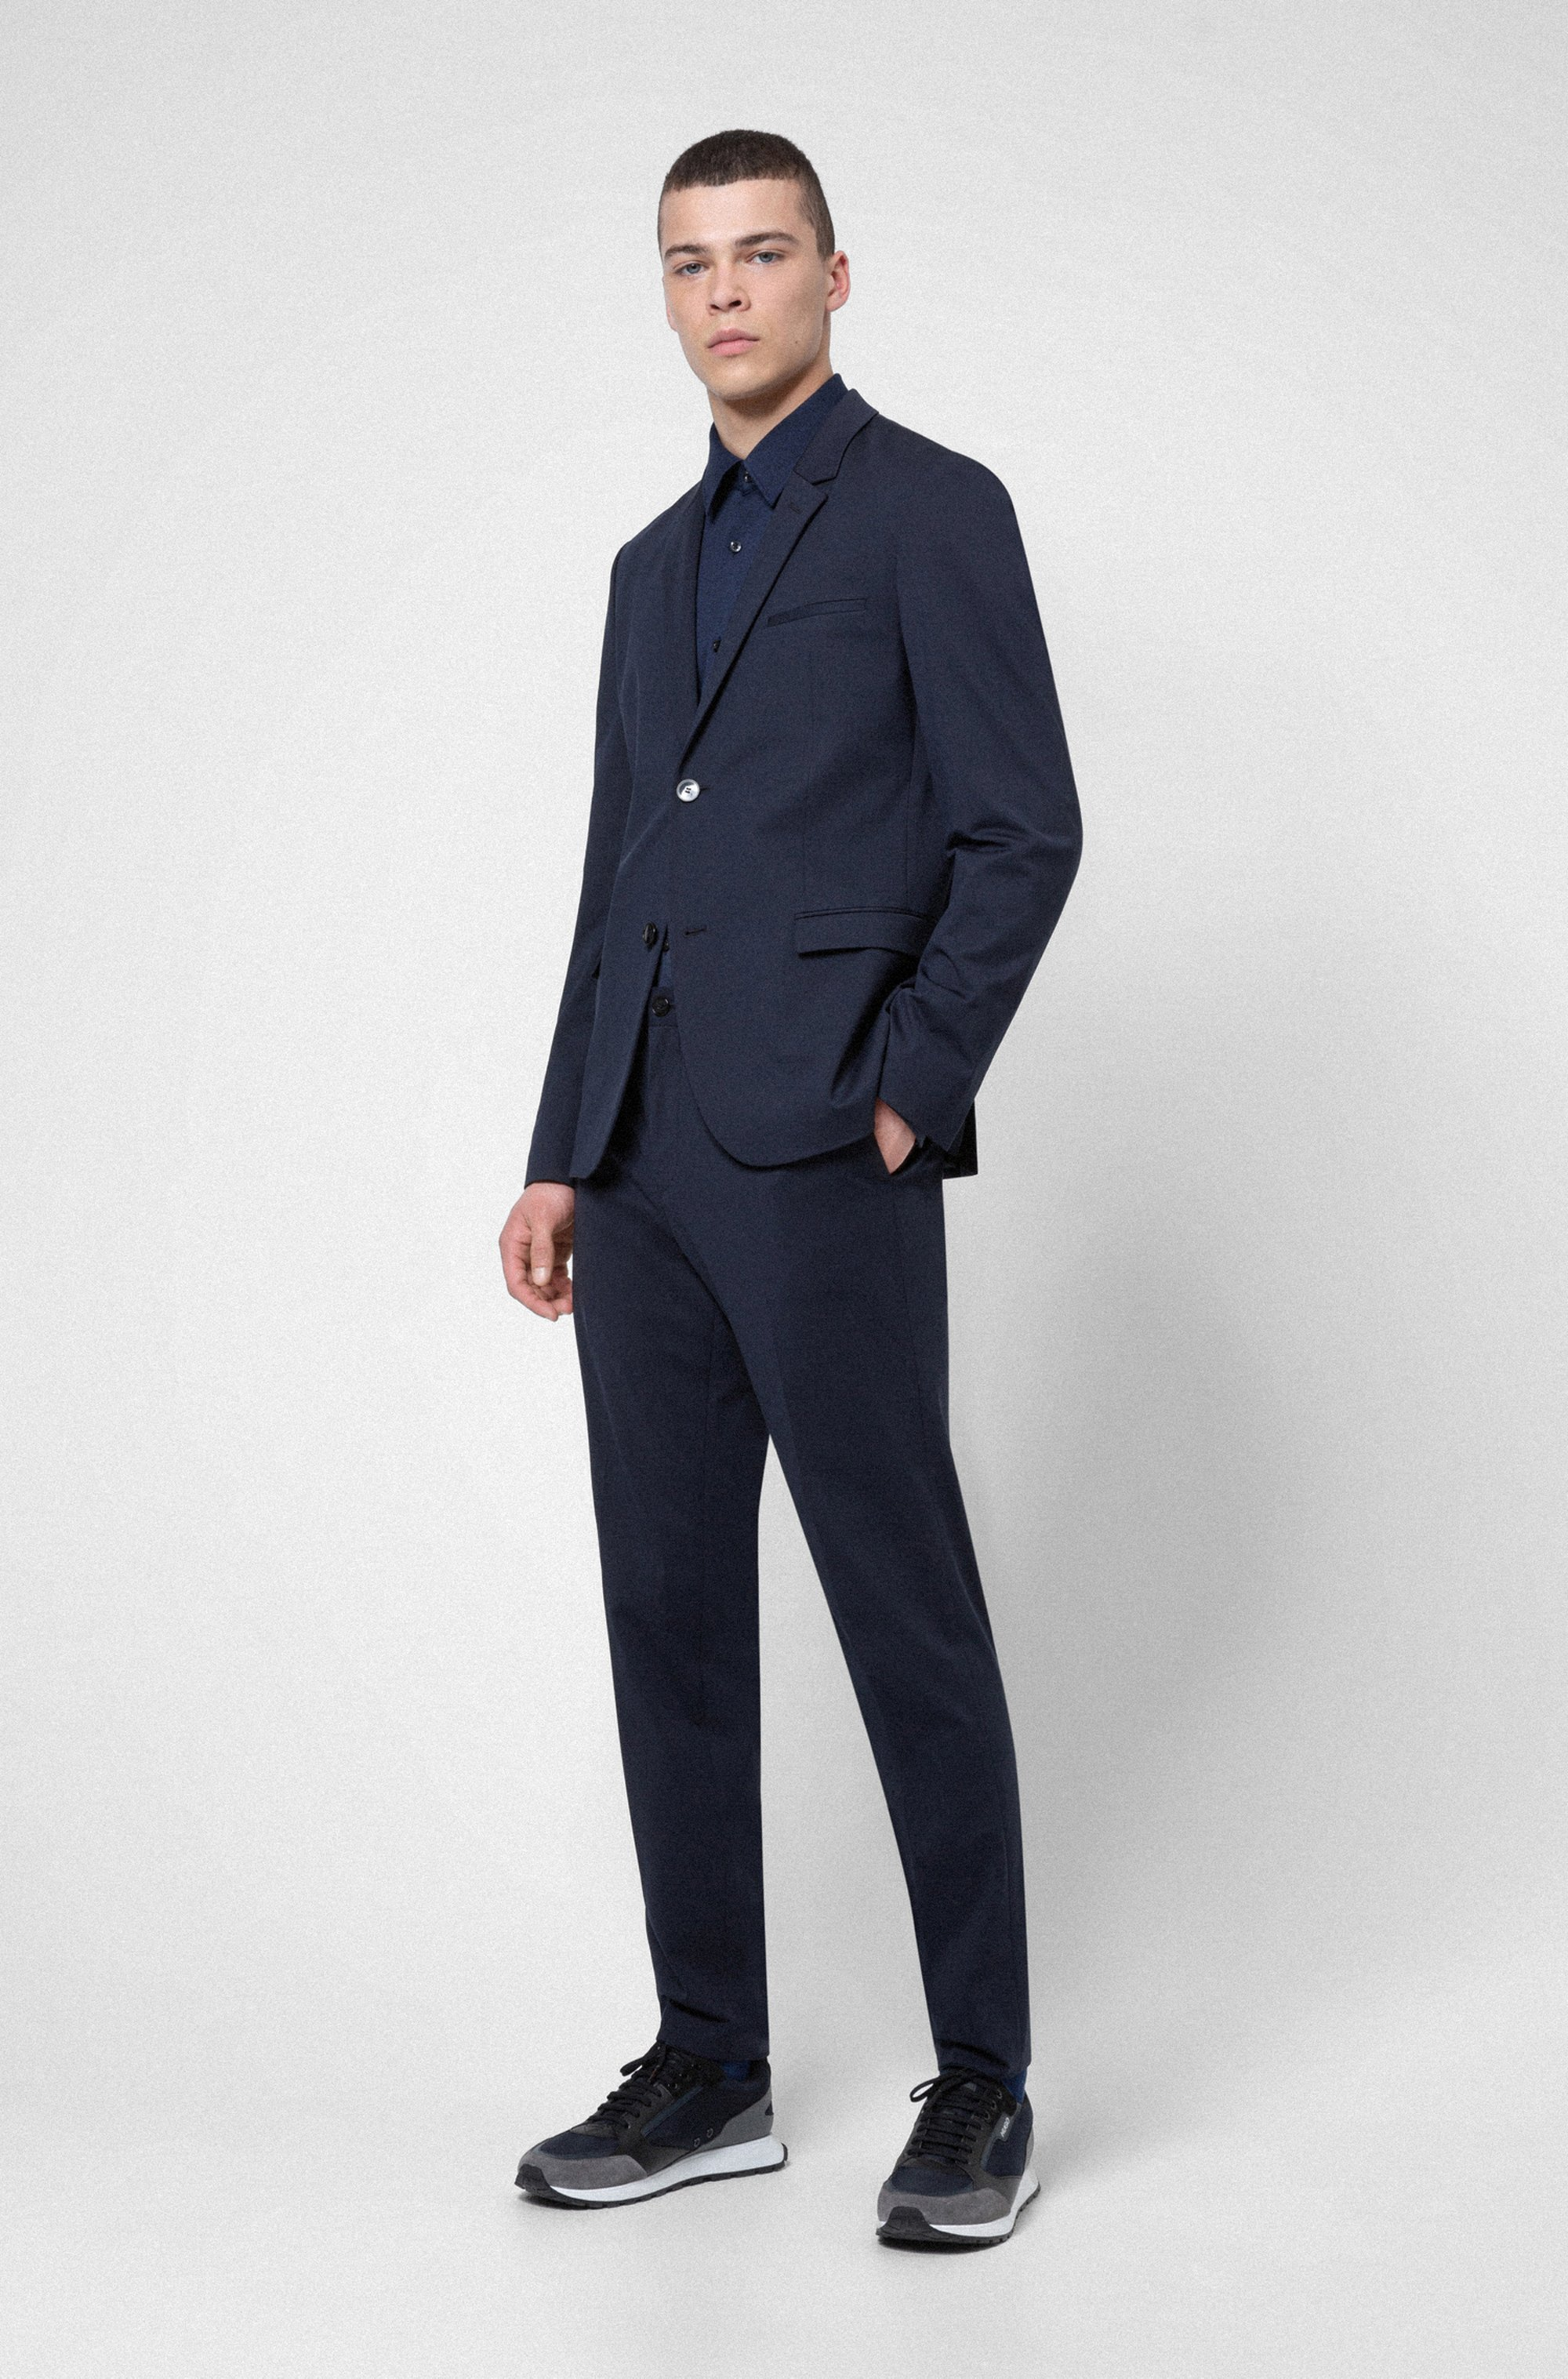 Extra-slim-fit packable suit in high-performance fabric